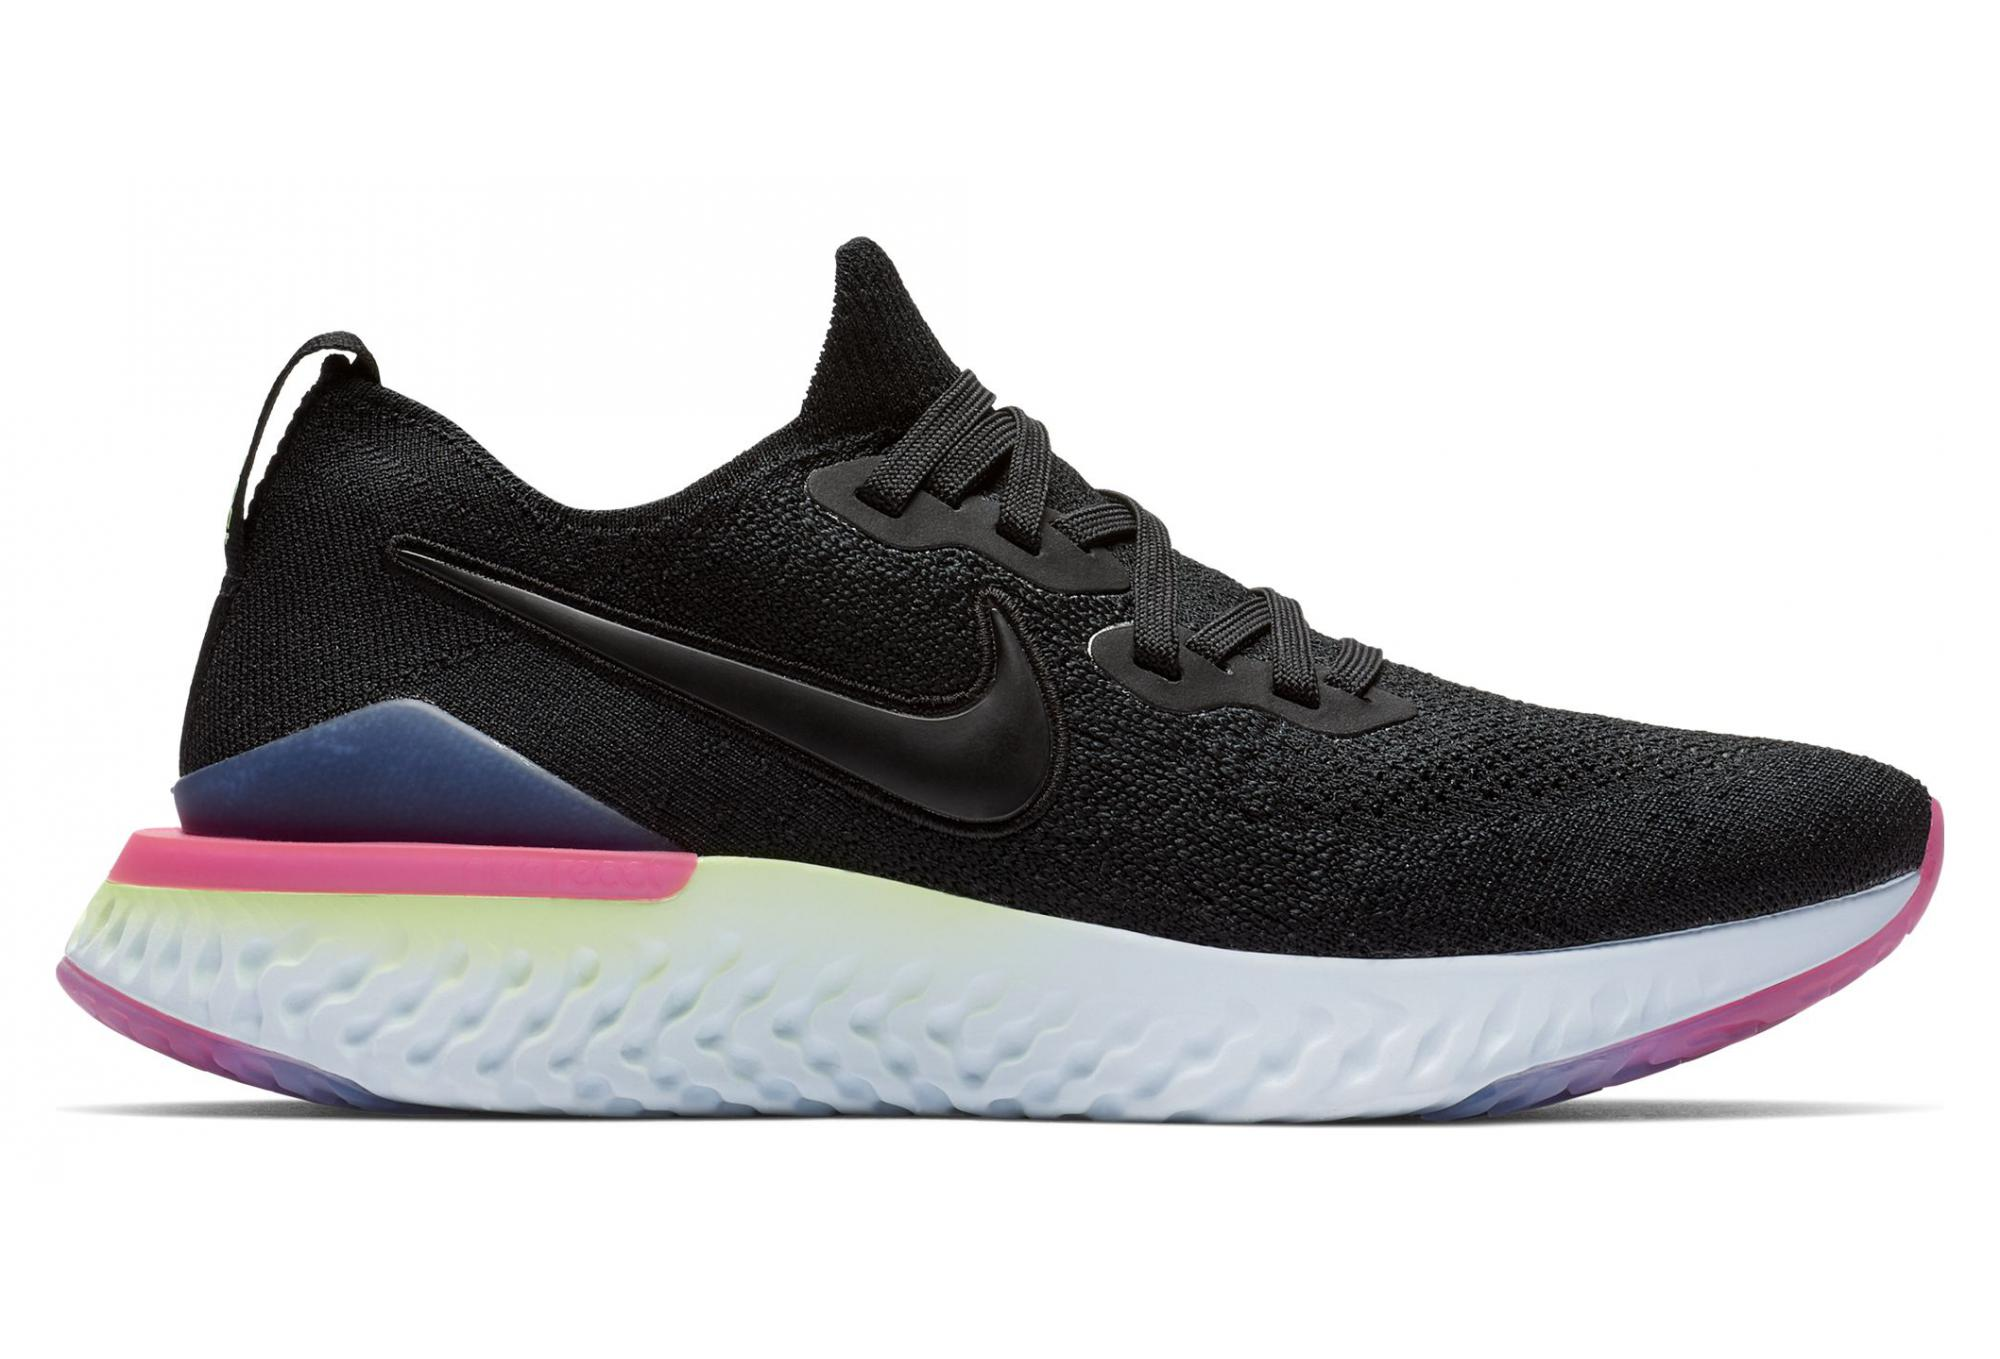 nike running epic react flyknit trainers in blue and pink